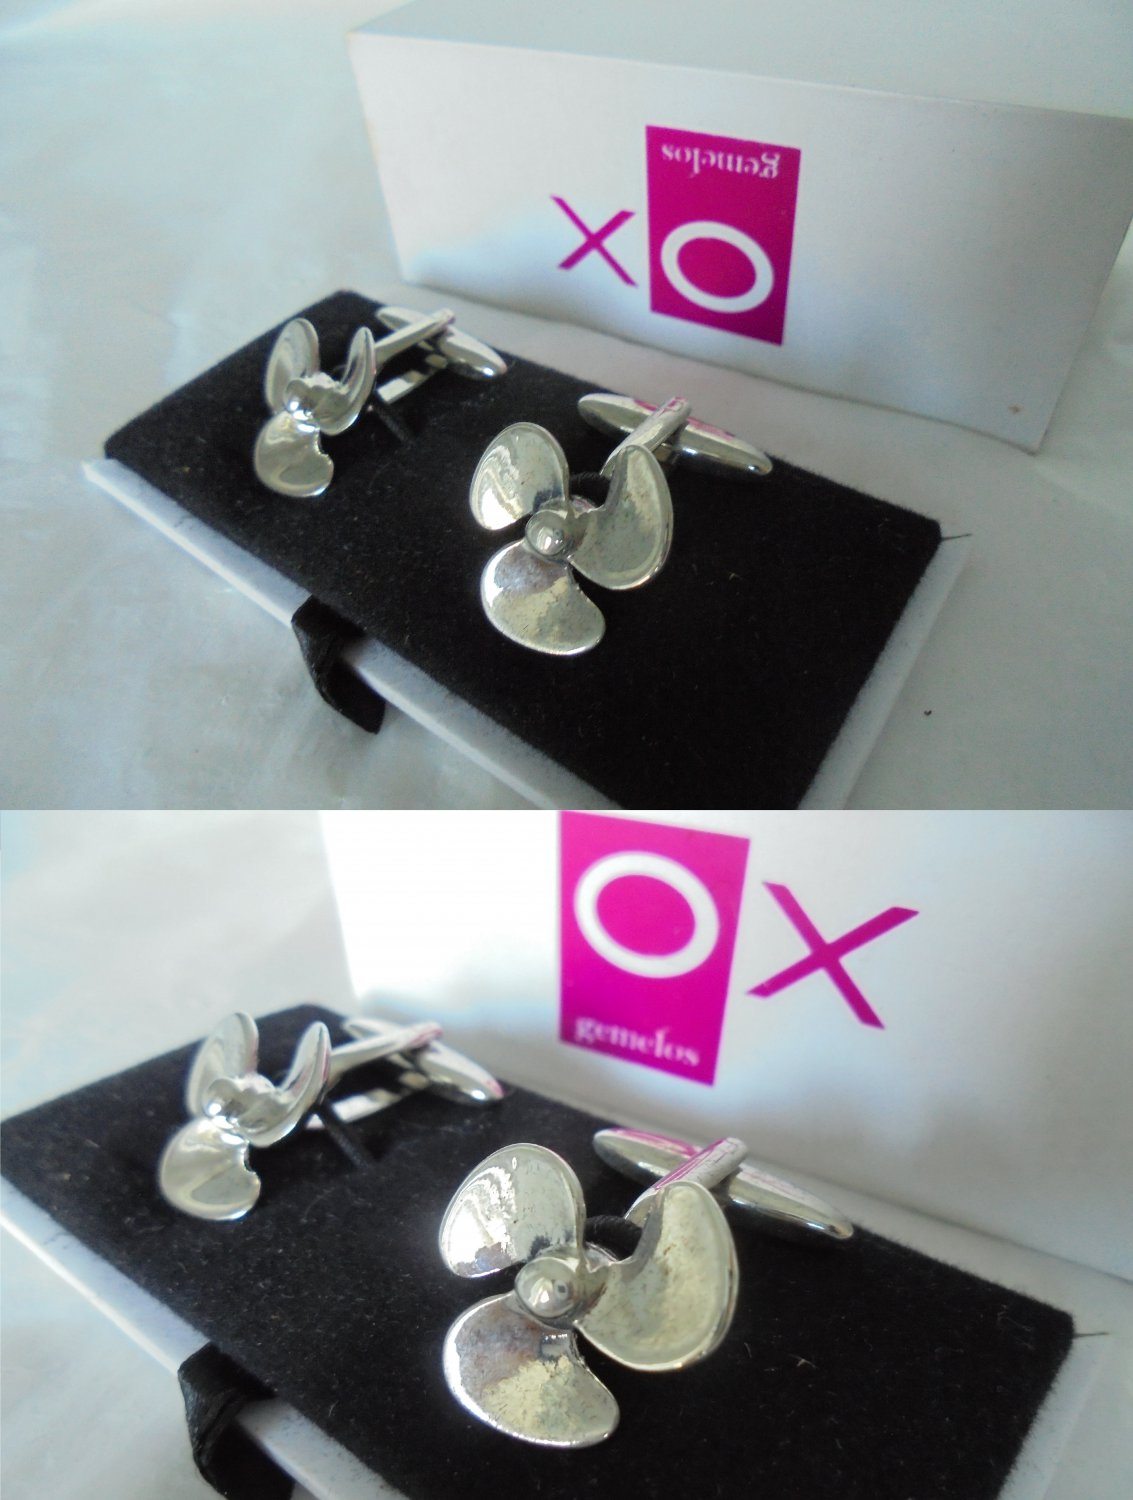 OX GEMELOS CUFFLINKS cuff links Naval Propellers New in gift box Made in Spain